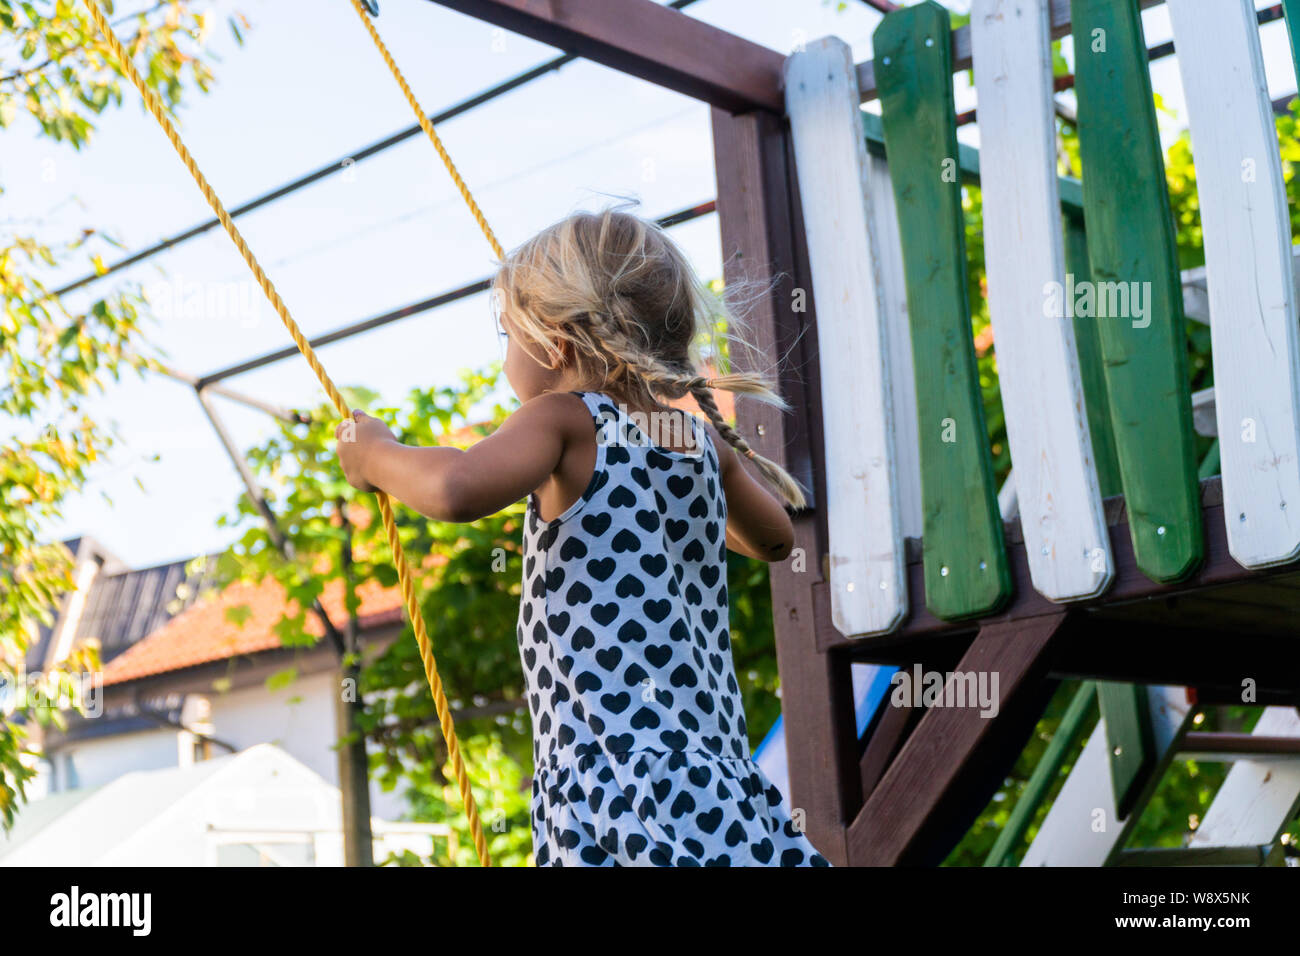 3-5 year old blond girl having fun on a swing outdoor. Summer playground. Girl swinging high. Young child on swing in garden Stock Photo